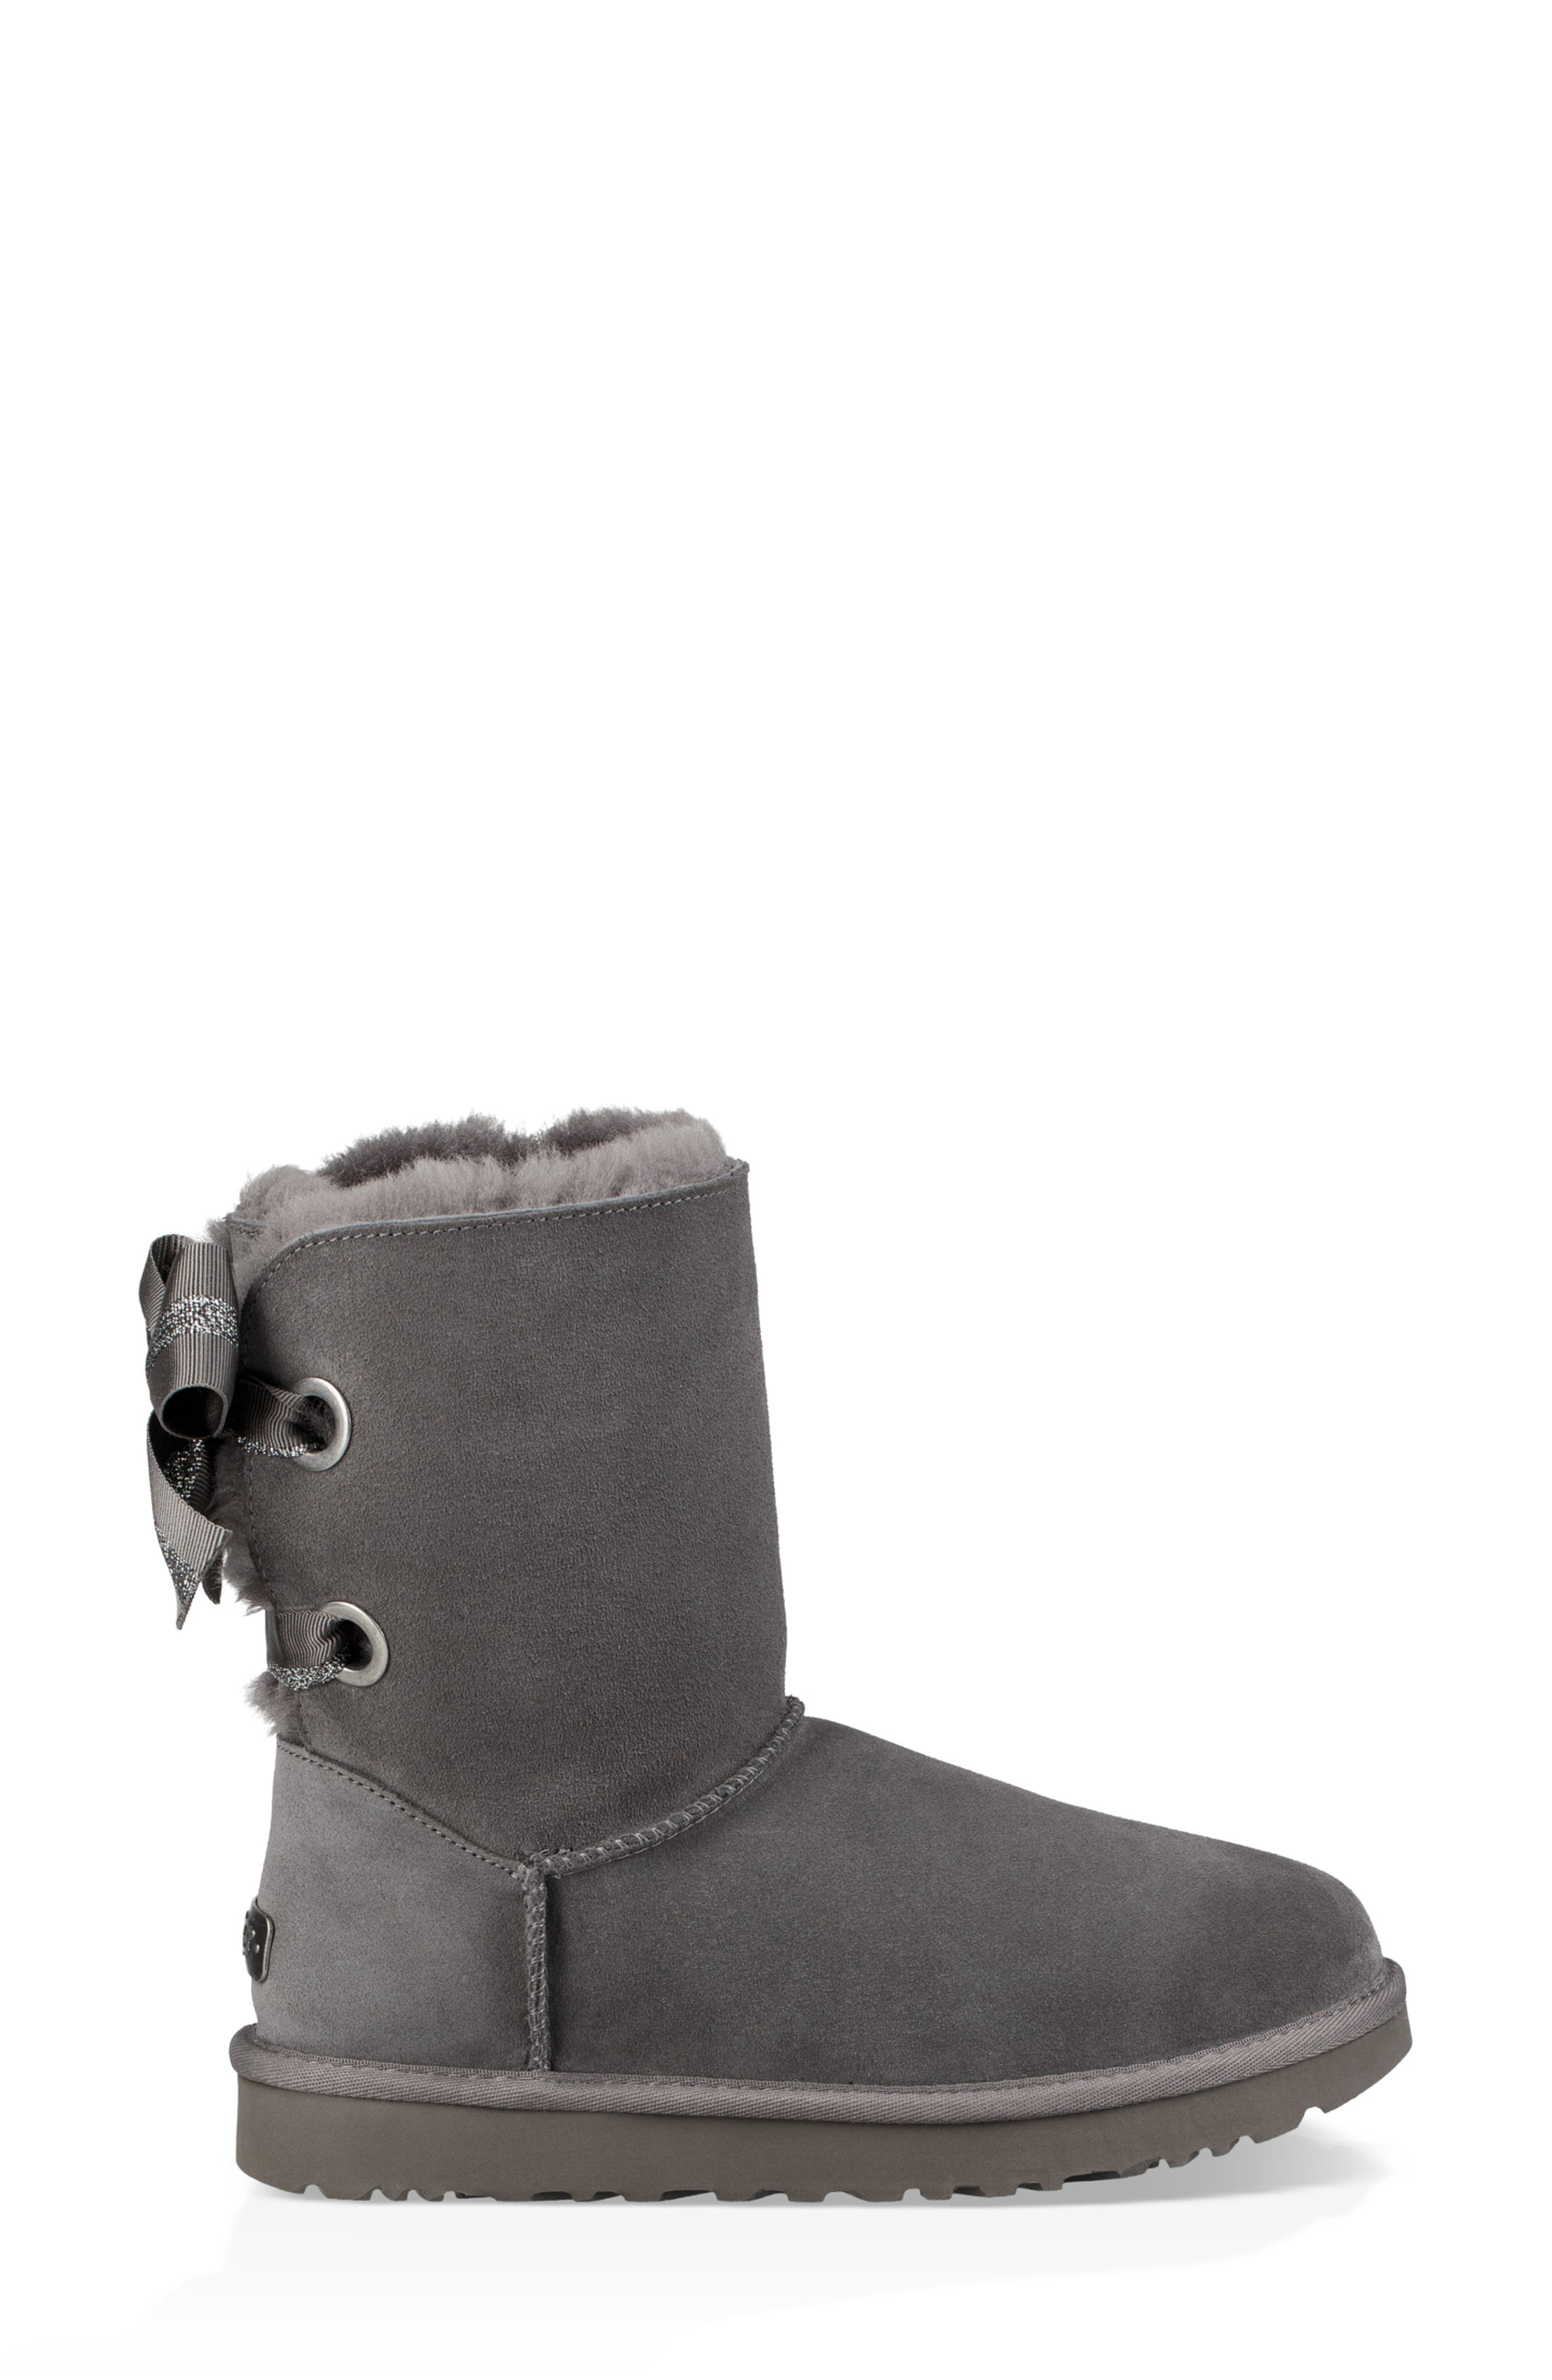 Customizable Bailey Bow Genuine Shearling Bootie,                             Alternate thumbnail 3, color,                             CHARCOAL SUEDE